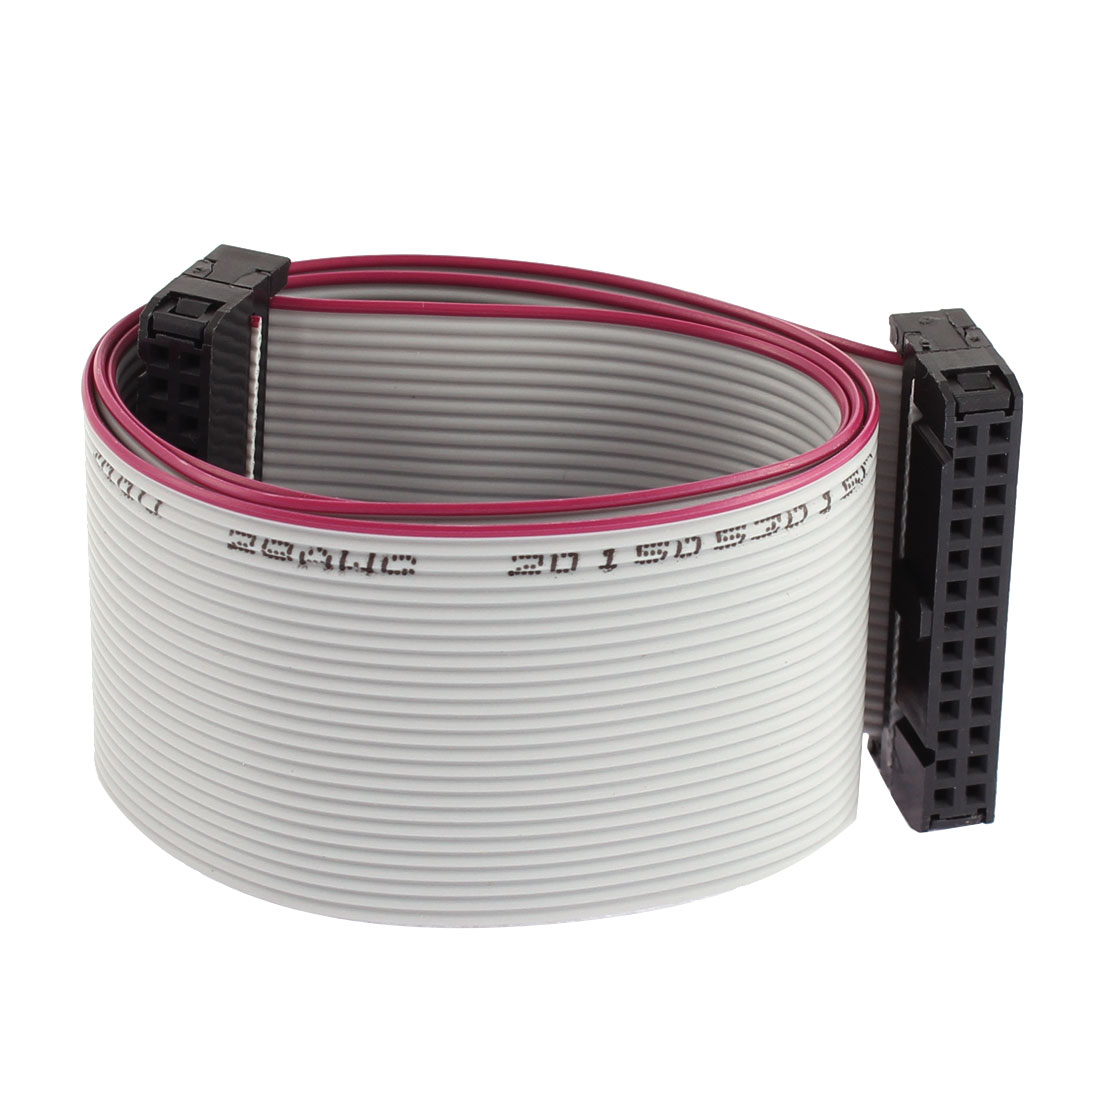 2.54mm Pitch 26 Pin 26 Wire IDC Connector Flat Ribbon Cable 50cm Long 2 Pcs